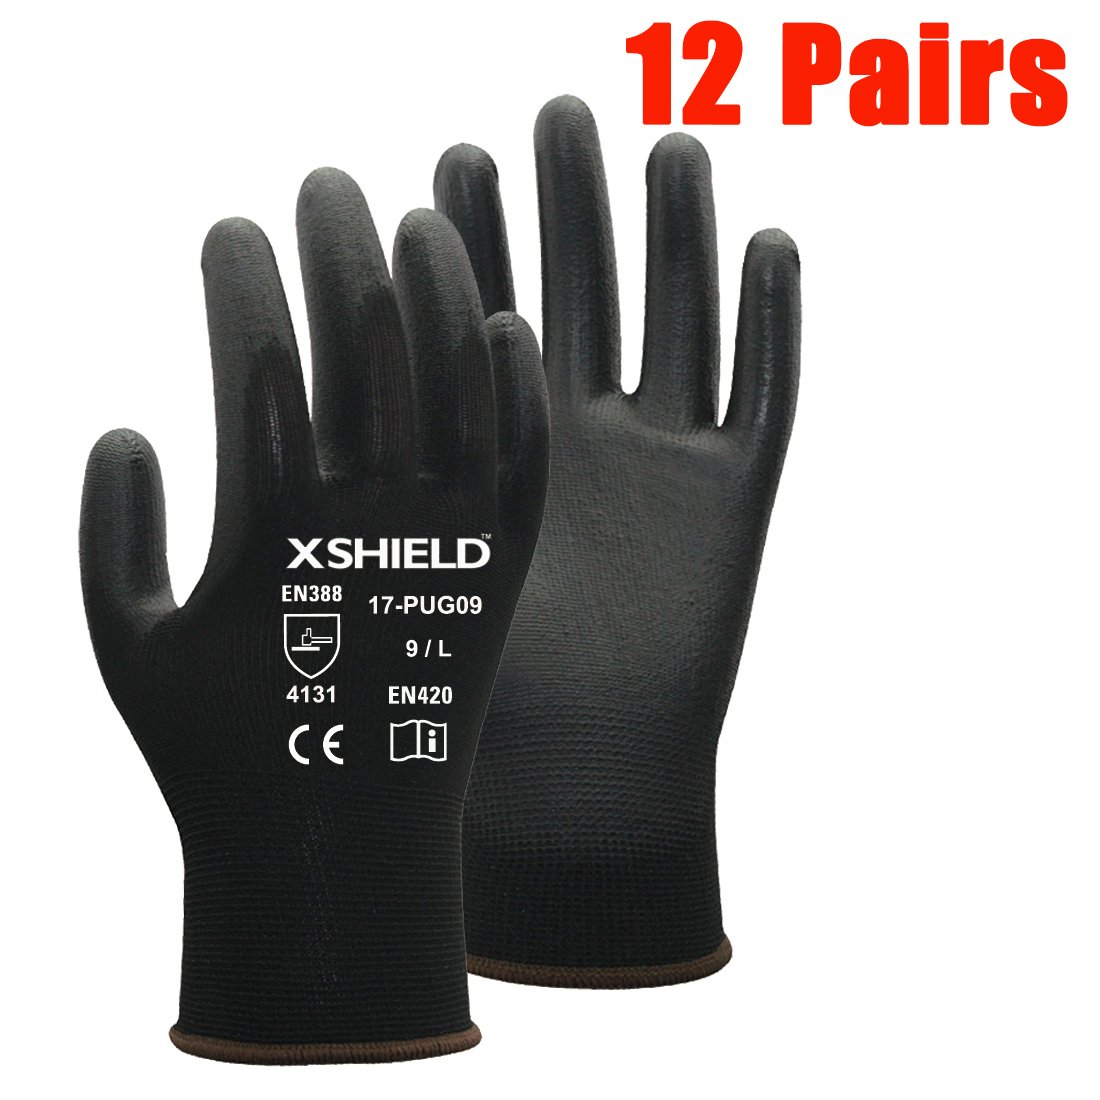 XSHIELD 17-PUG,Polyurethane/Nylon Safety WORK Glove,BLACK,12 Pairs (Medium)